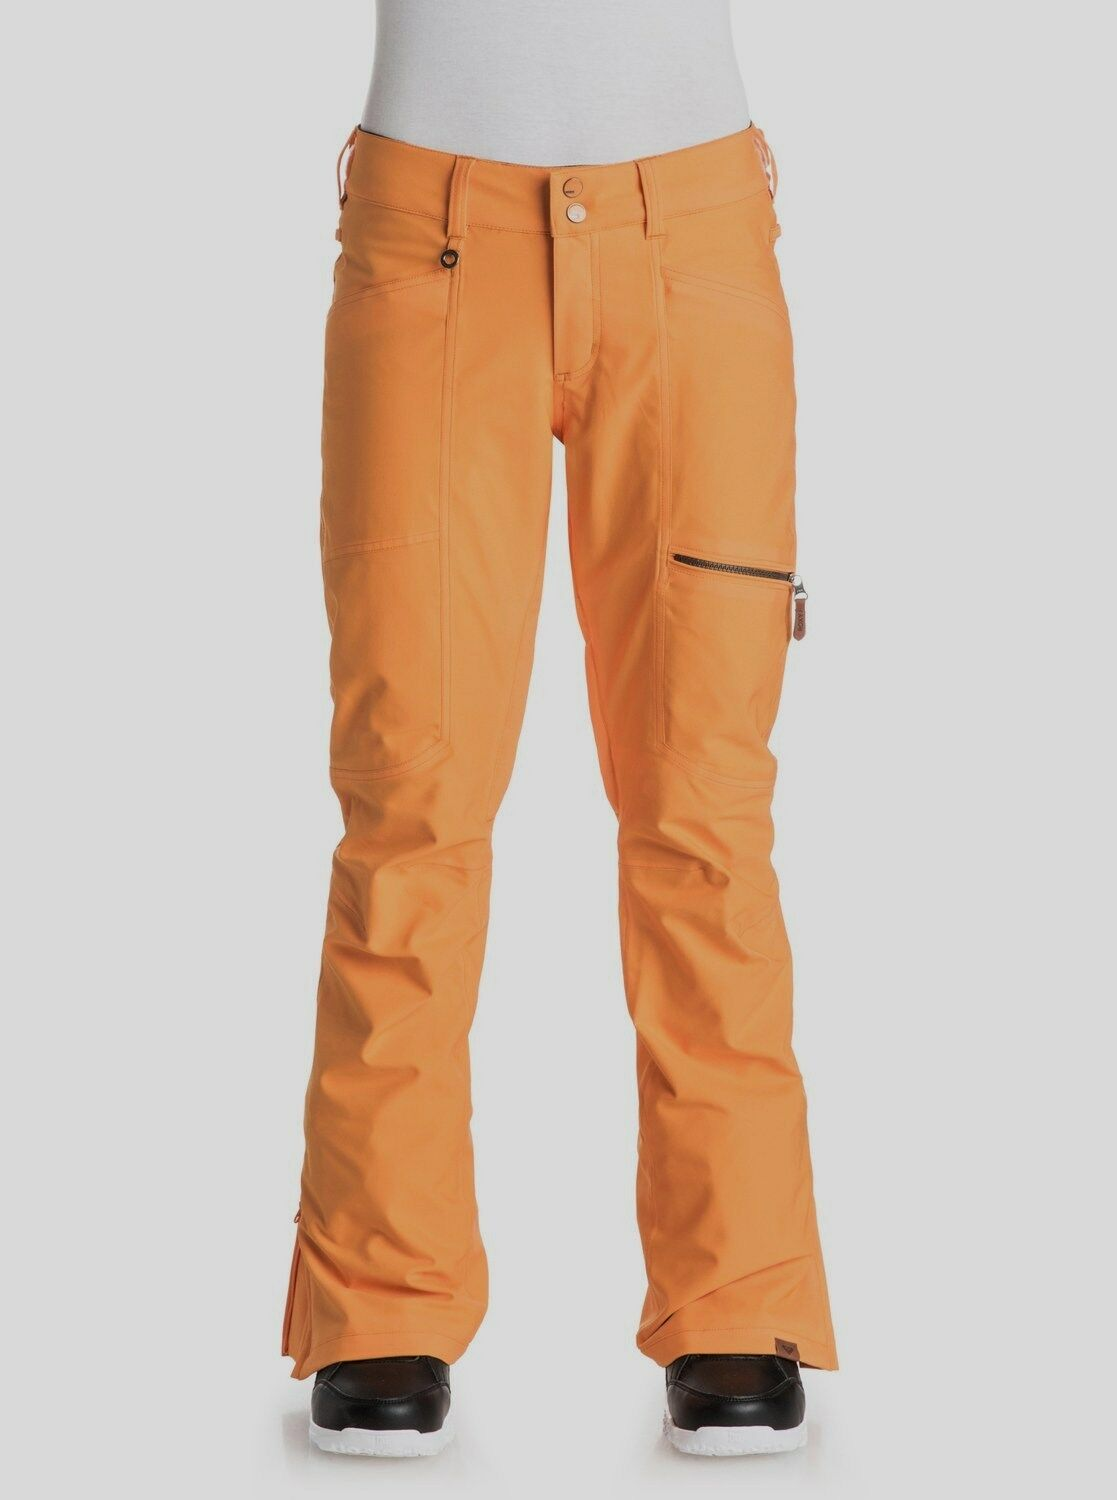 ROXY Women's CABIN Snow Pants - NHP0 - Small - NWT